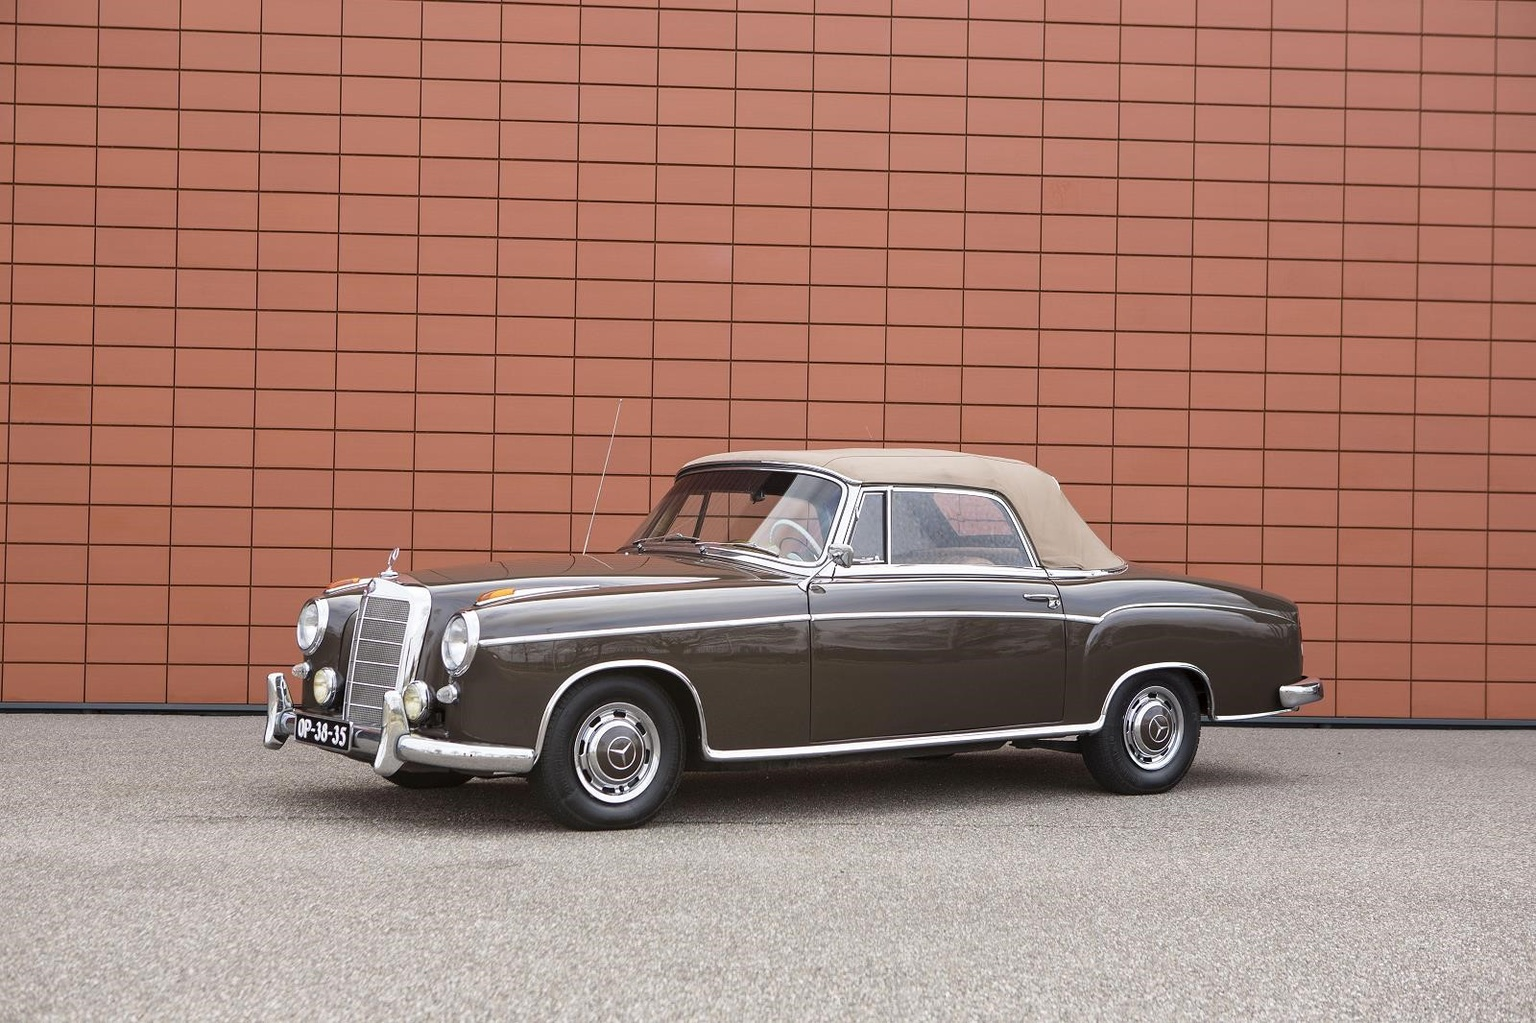 1958 1960 mercedes benz 220 se cabriolet review for 1958 mercedes benz 220s for sale